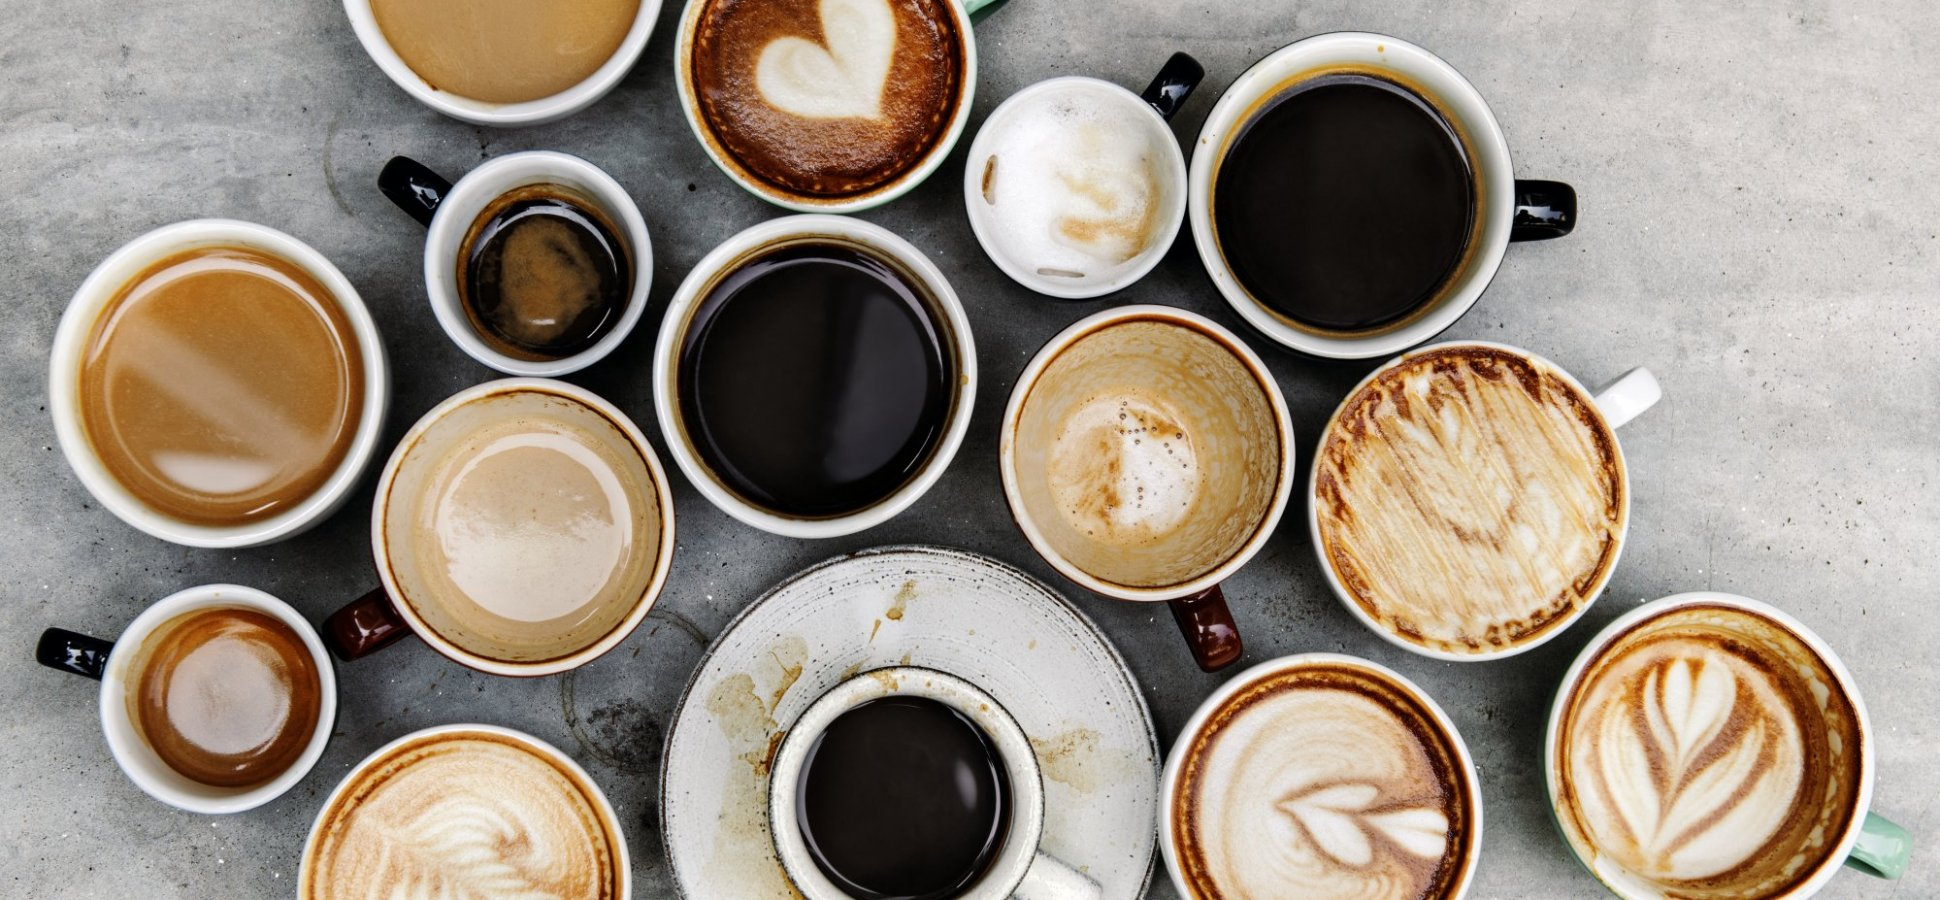 A Massive New Study of 347,077 People Just Revealed Exactly How Much Coffee You Should Drink Each Day. (Before the Health Dangers Outweigh the Benefits) | Inc.com